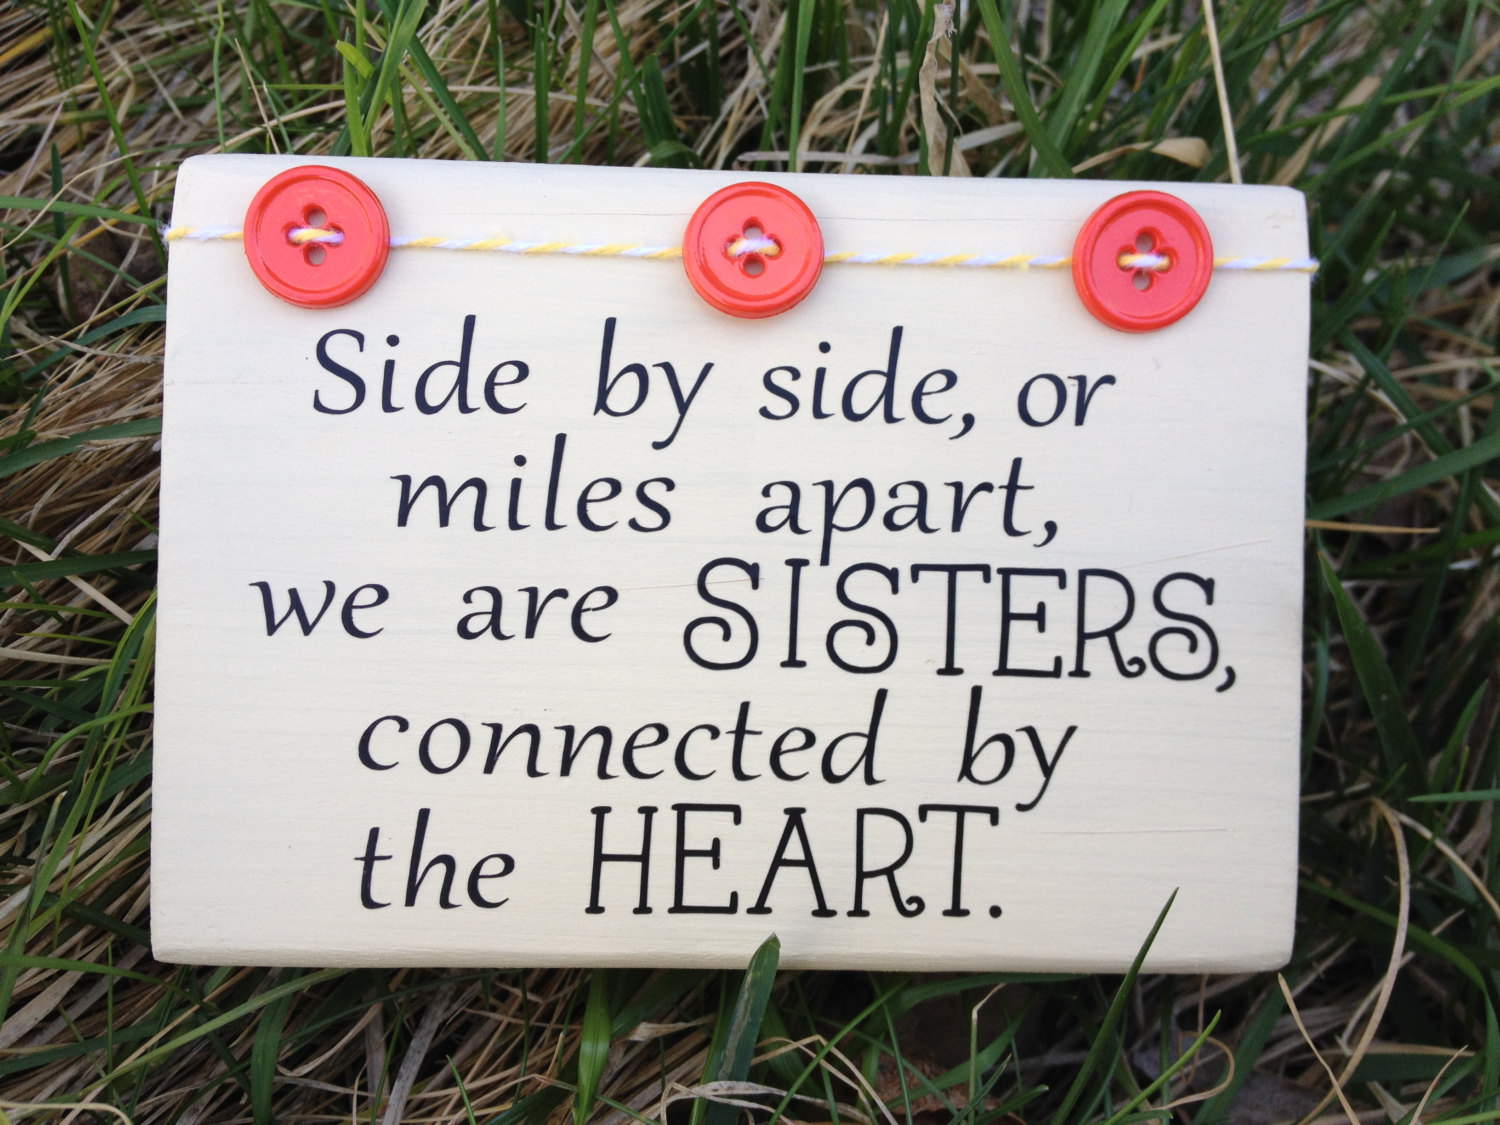 Sister Love Quotes Wallpaper : Sister Quotes Wallpaper. QuotesGram